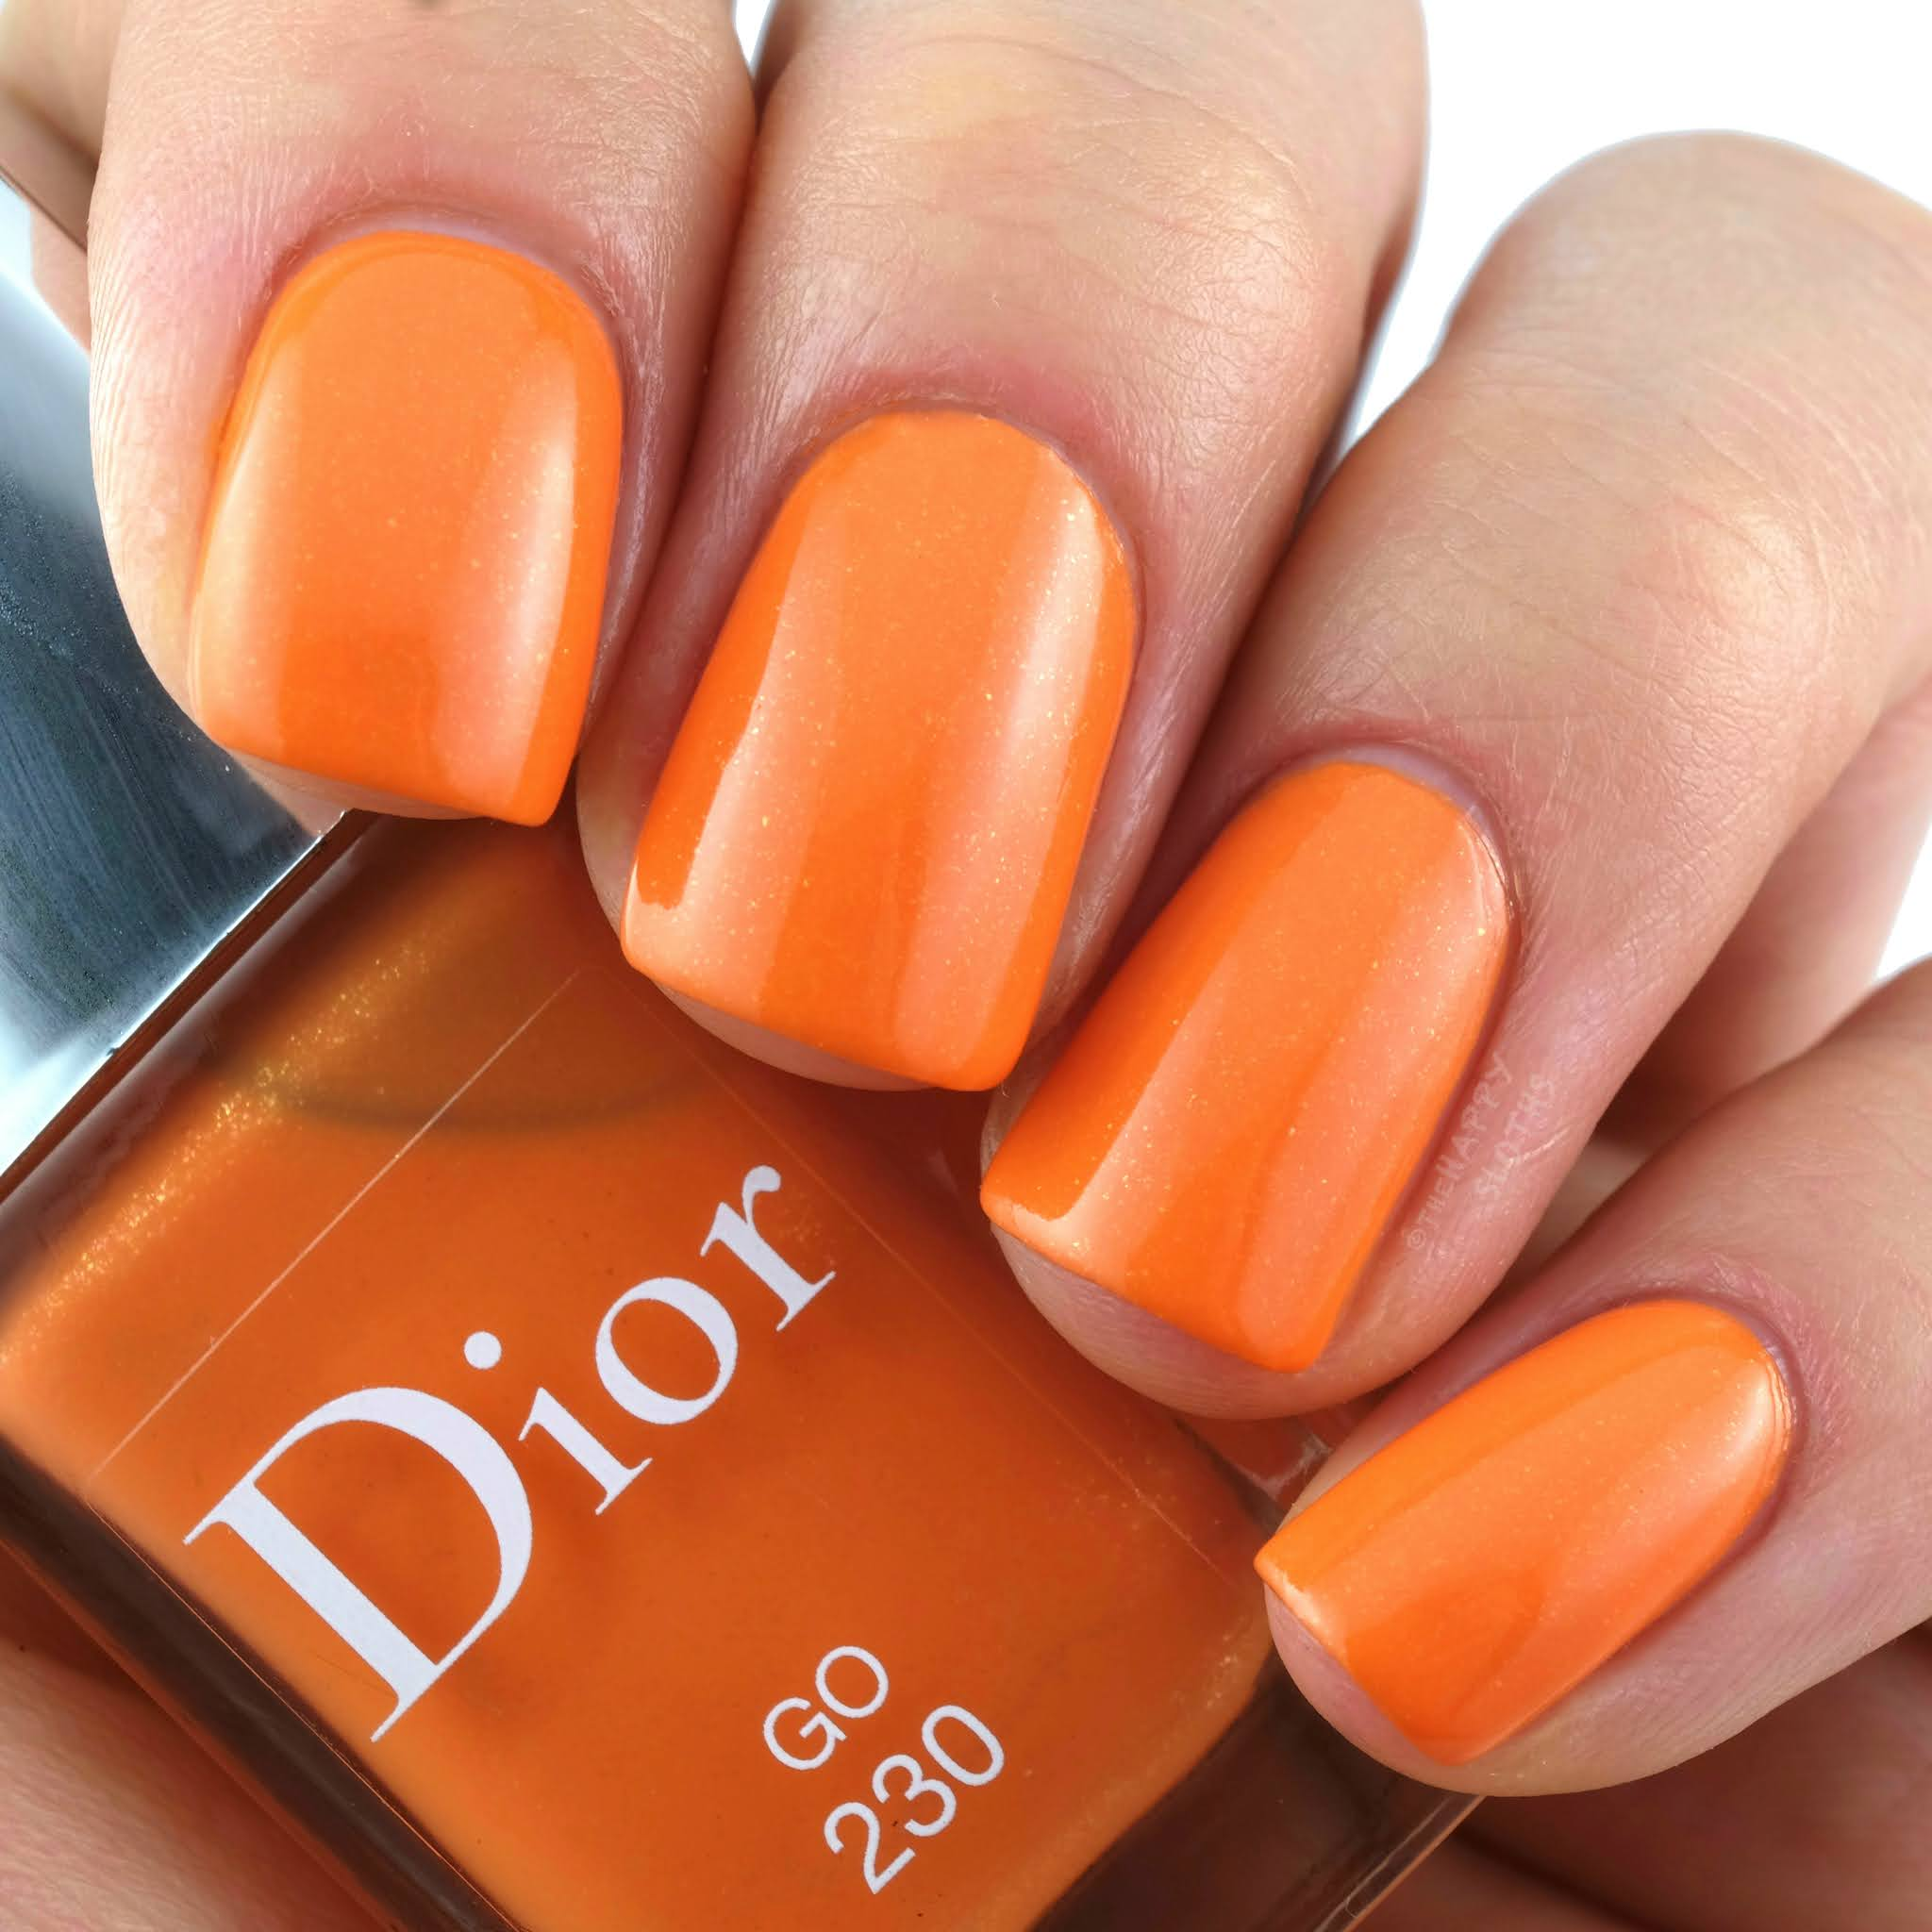 "Dior Summer 2020 | Dior Vernis Color Games Nail Lacquer in ""230 Go"": Review and Swatches"